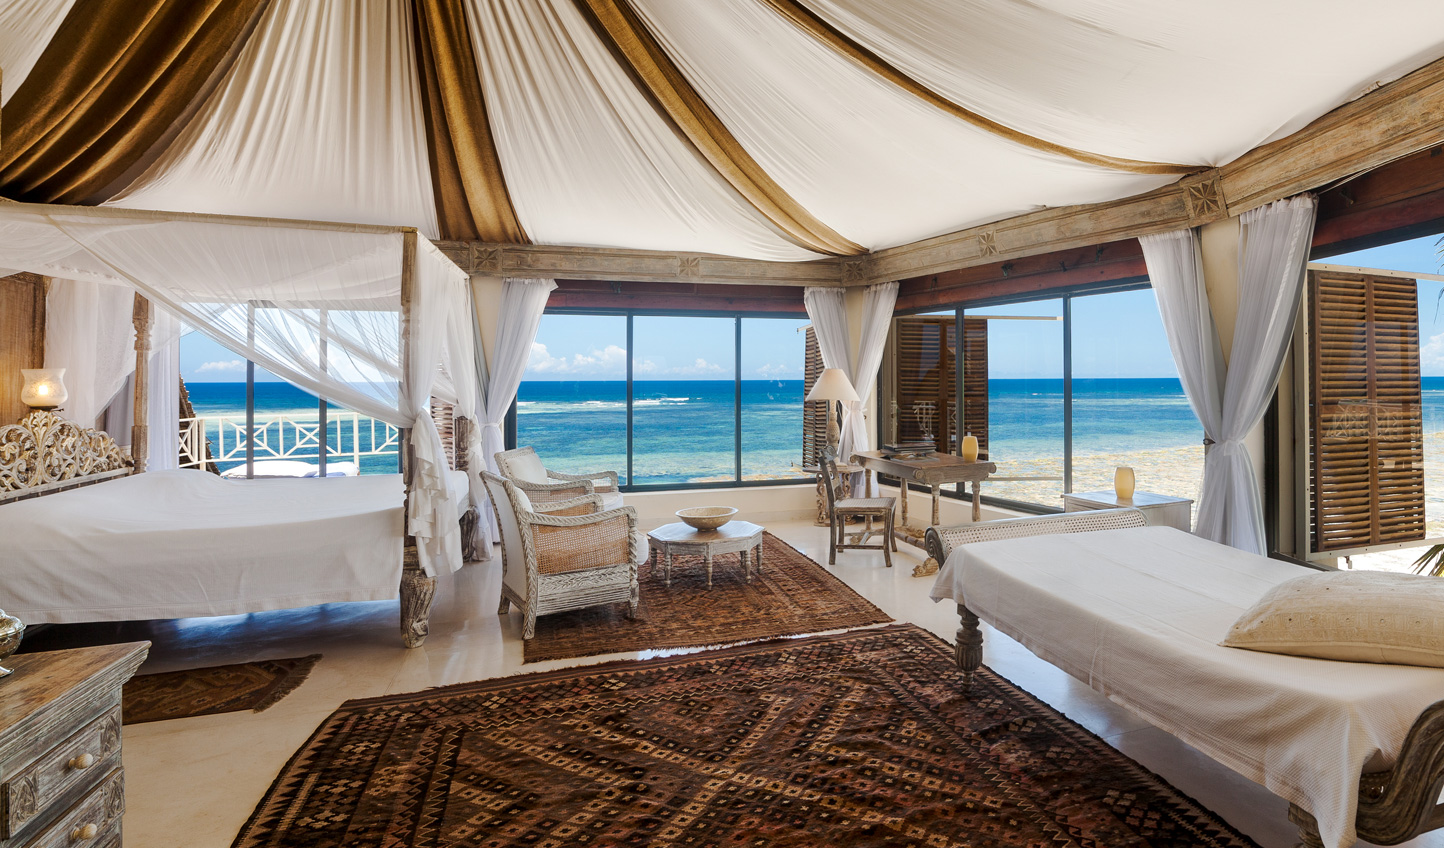 Wake up to views of clear skies and azure seas